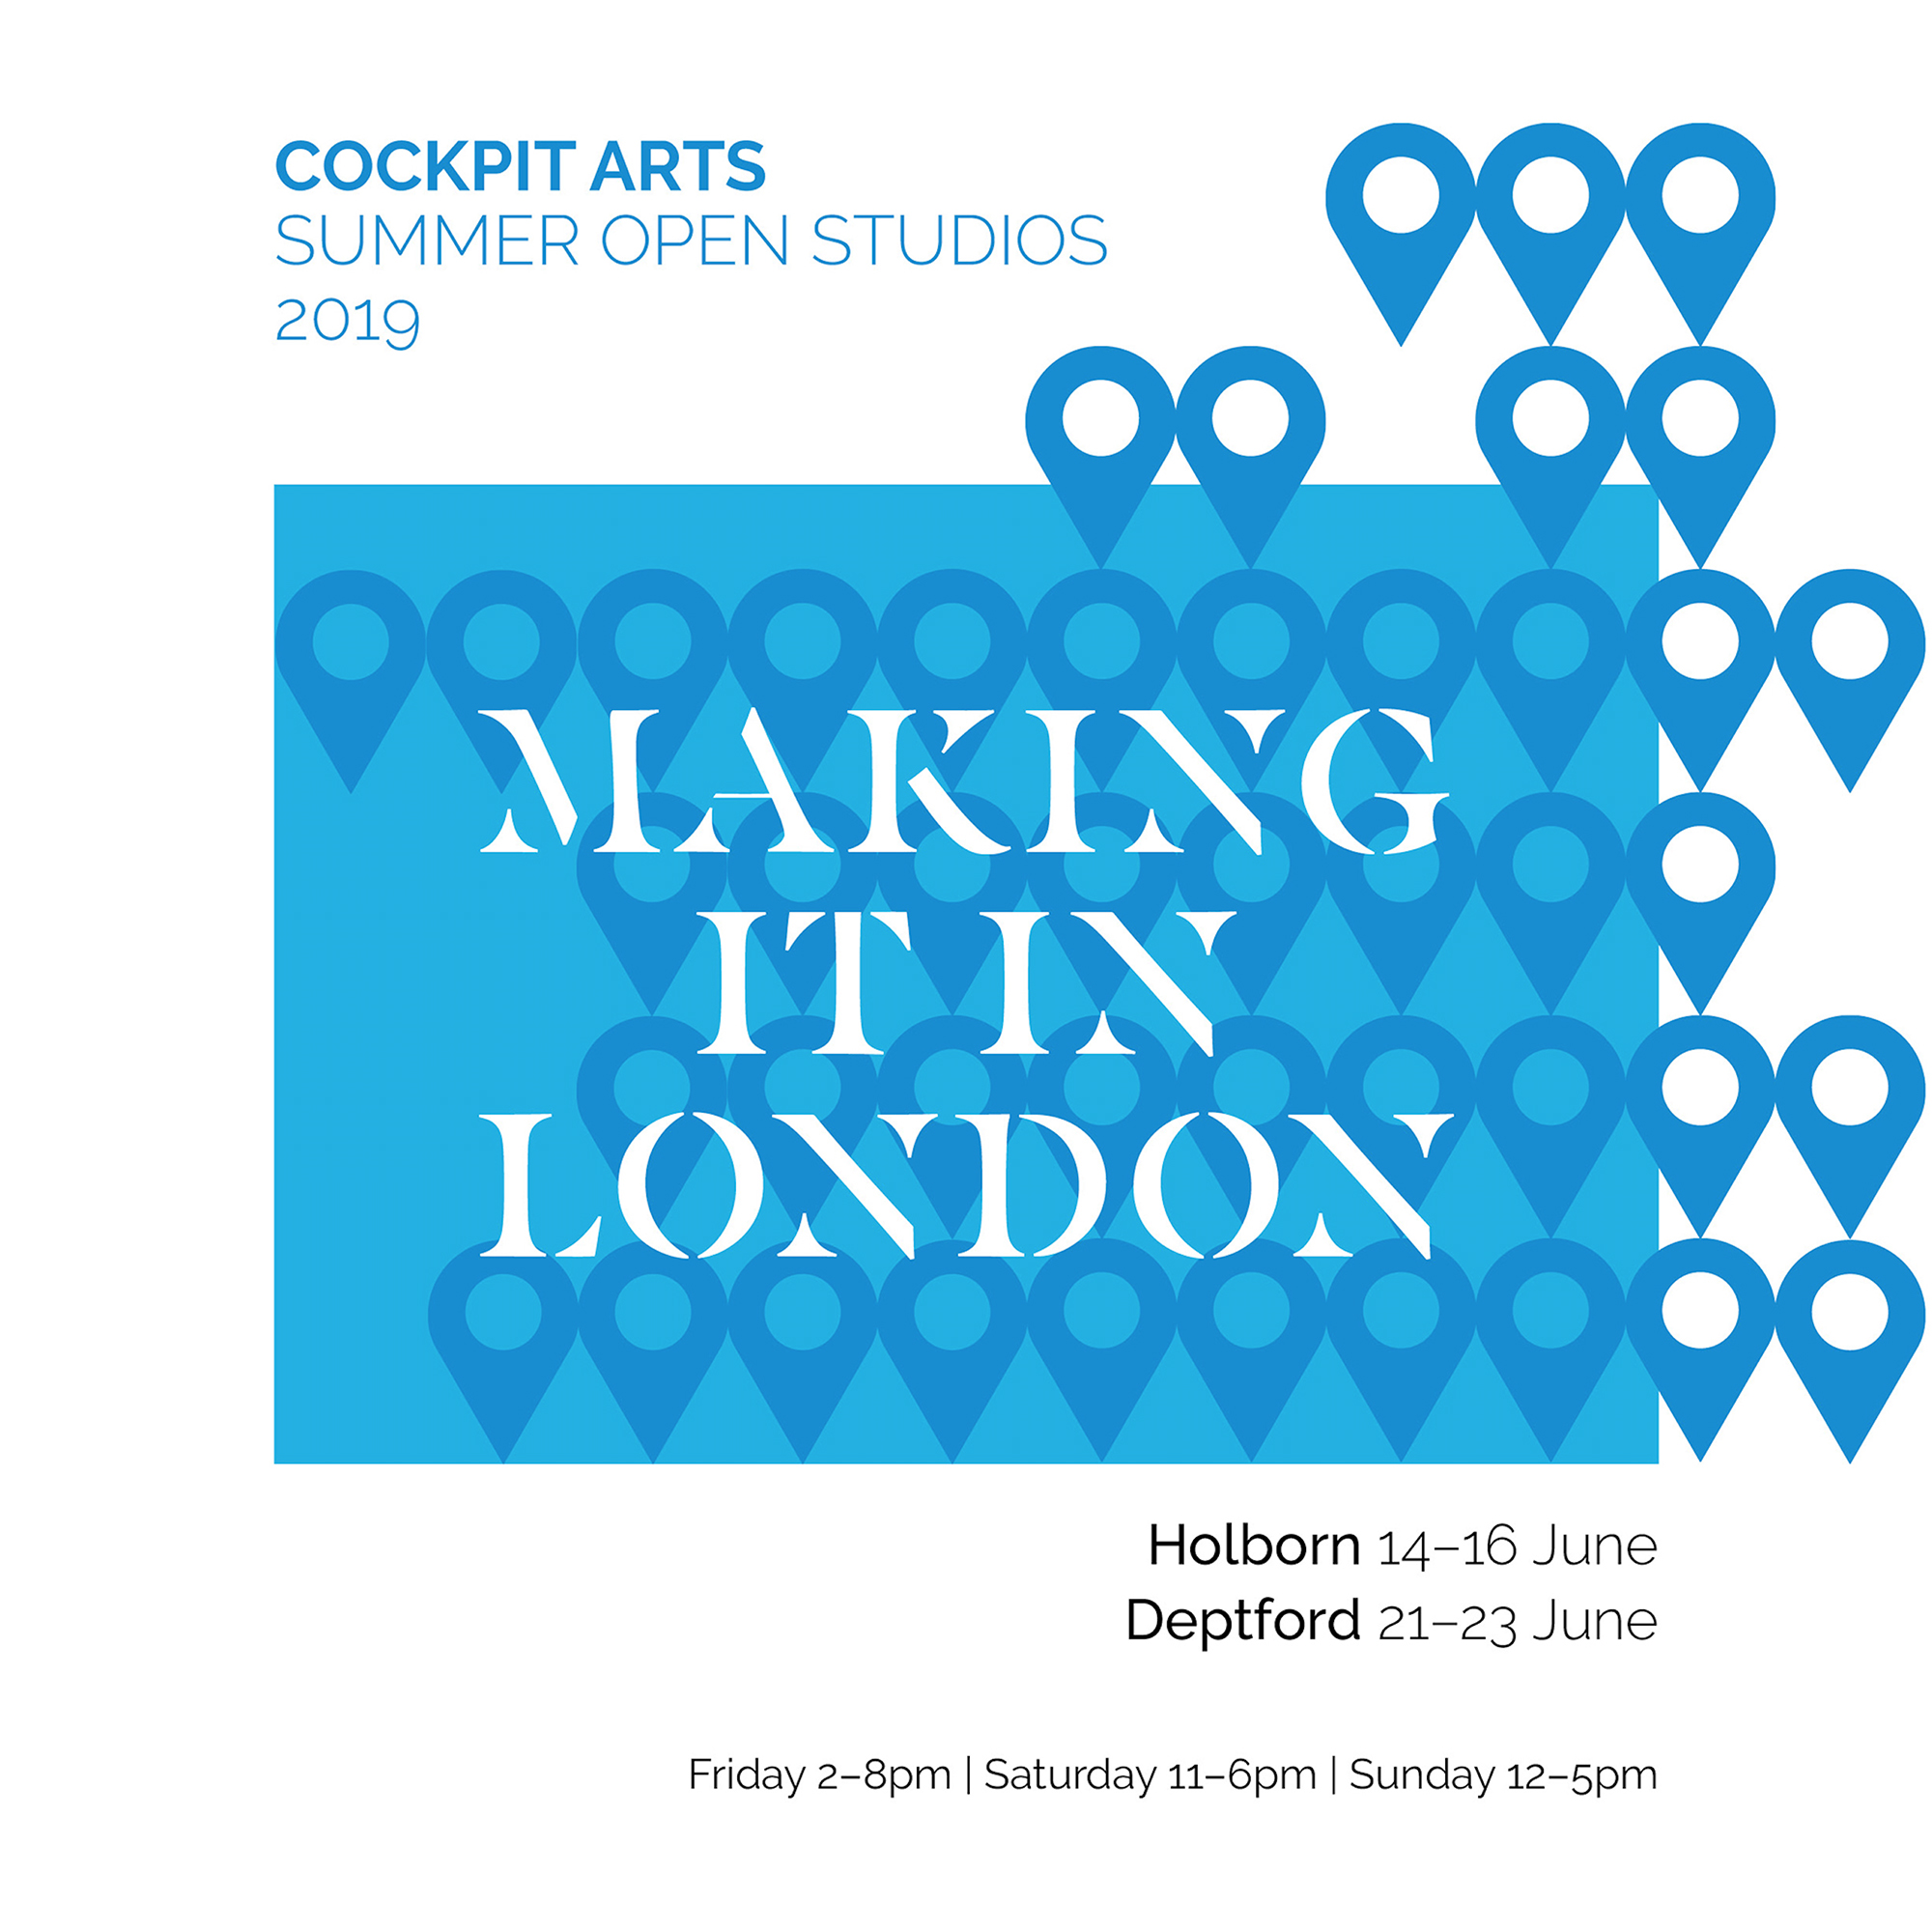 Cockpit Arts Open Studios 2019